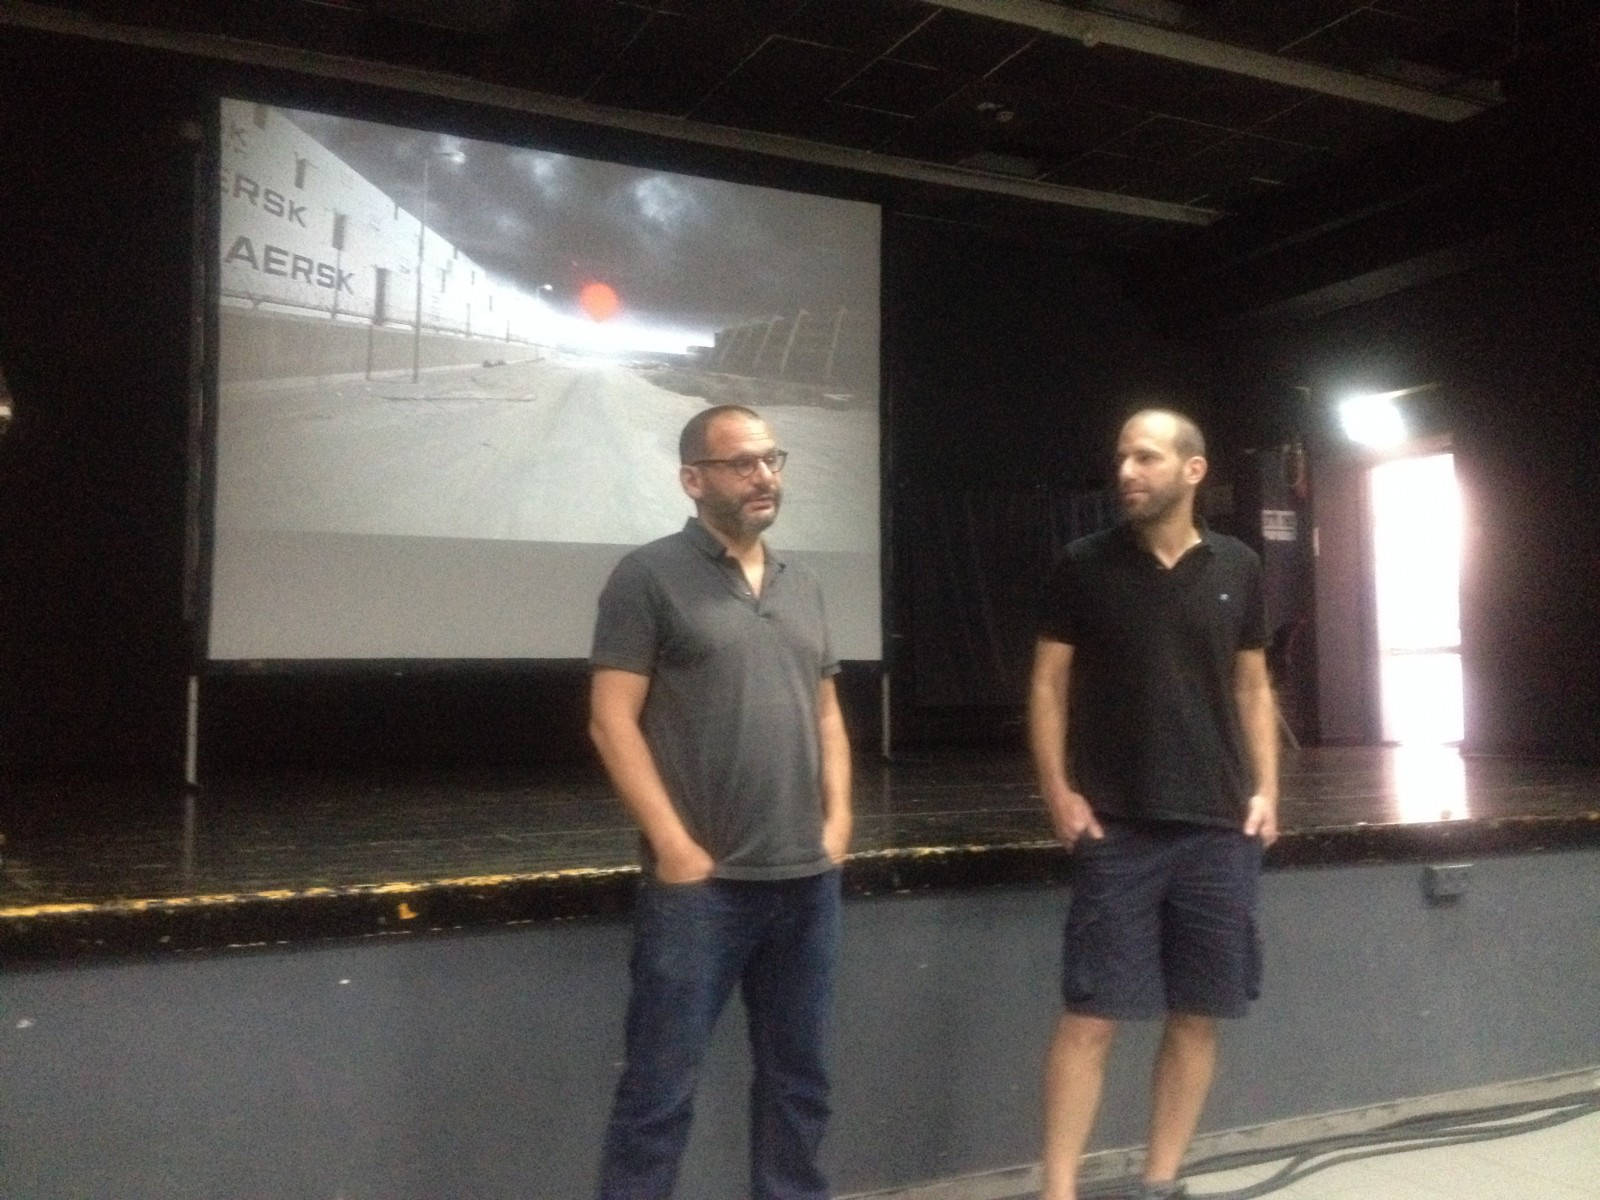 Pitching session - Misguided Bullet (Thomas Alfandari and Nitzan Ron)